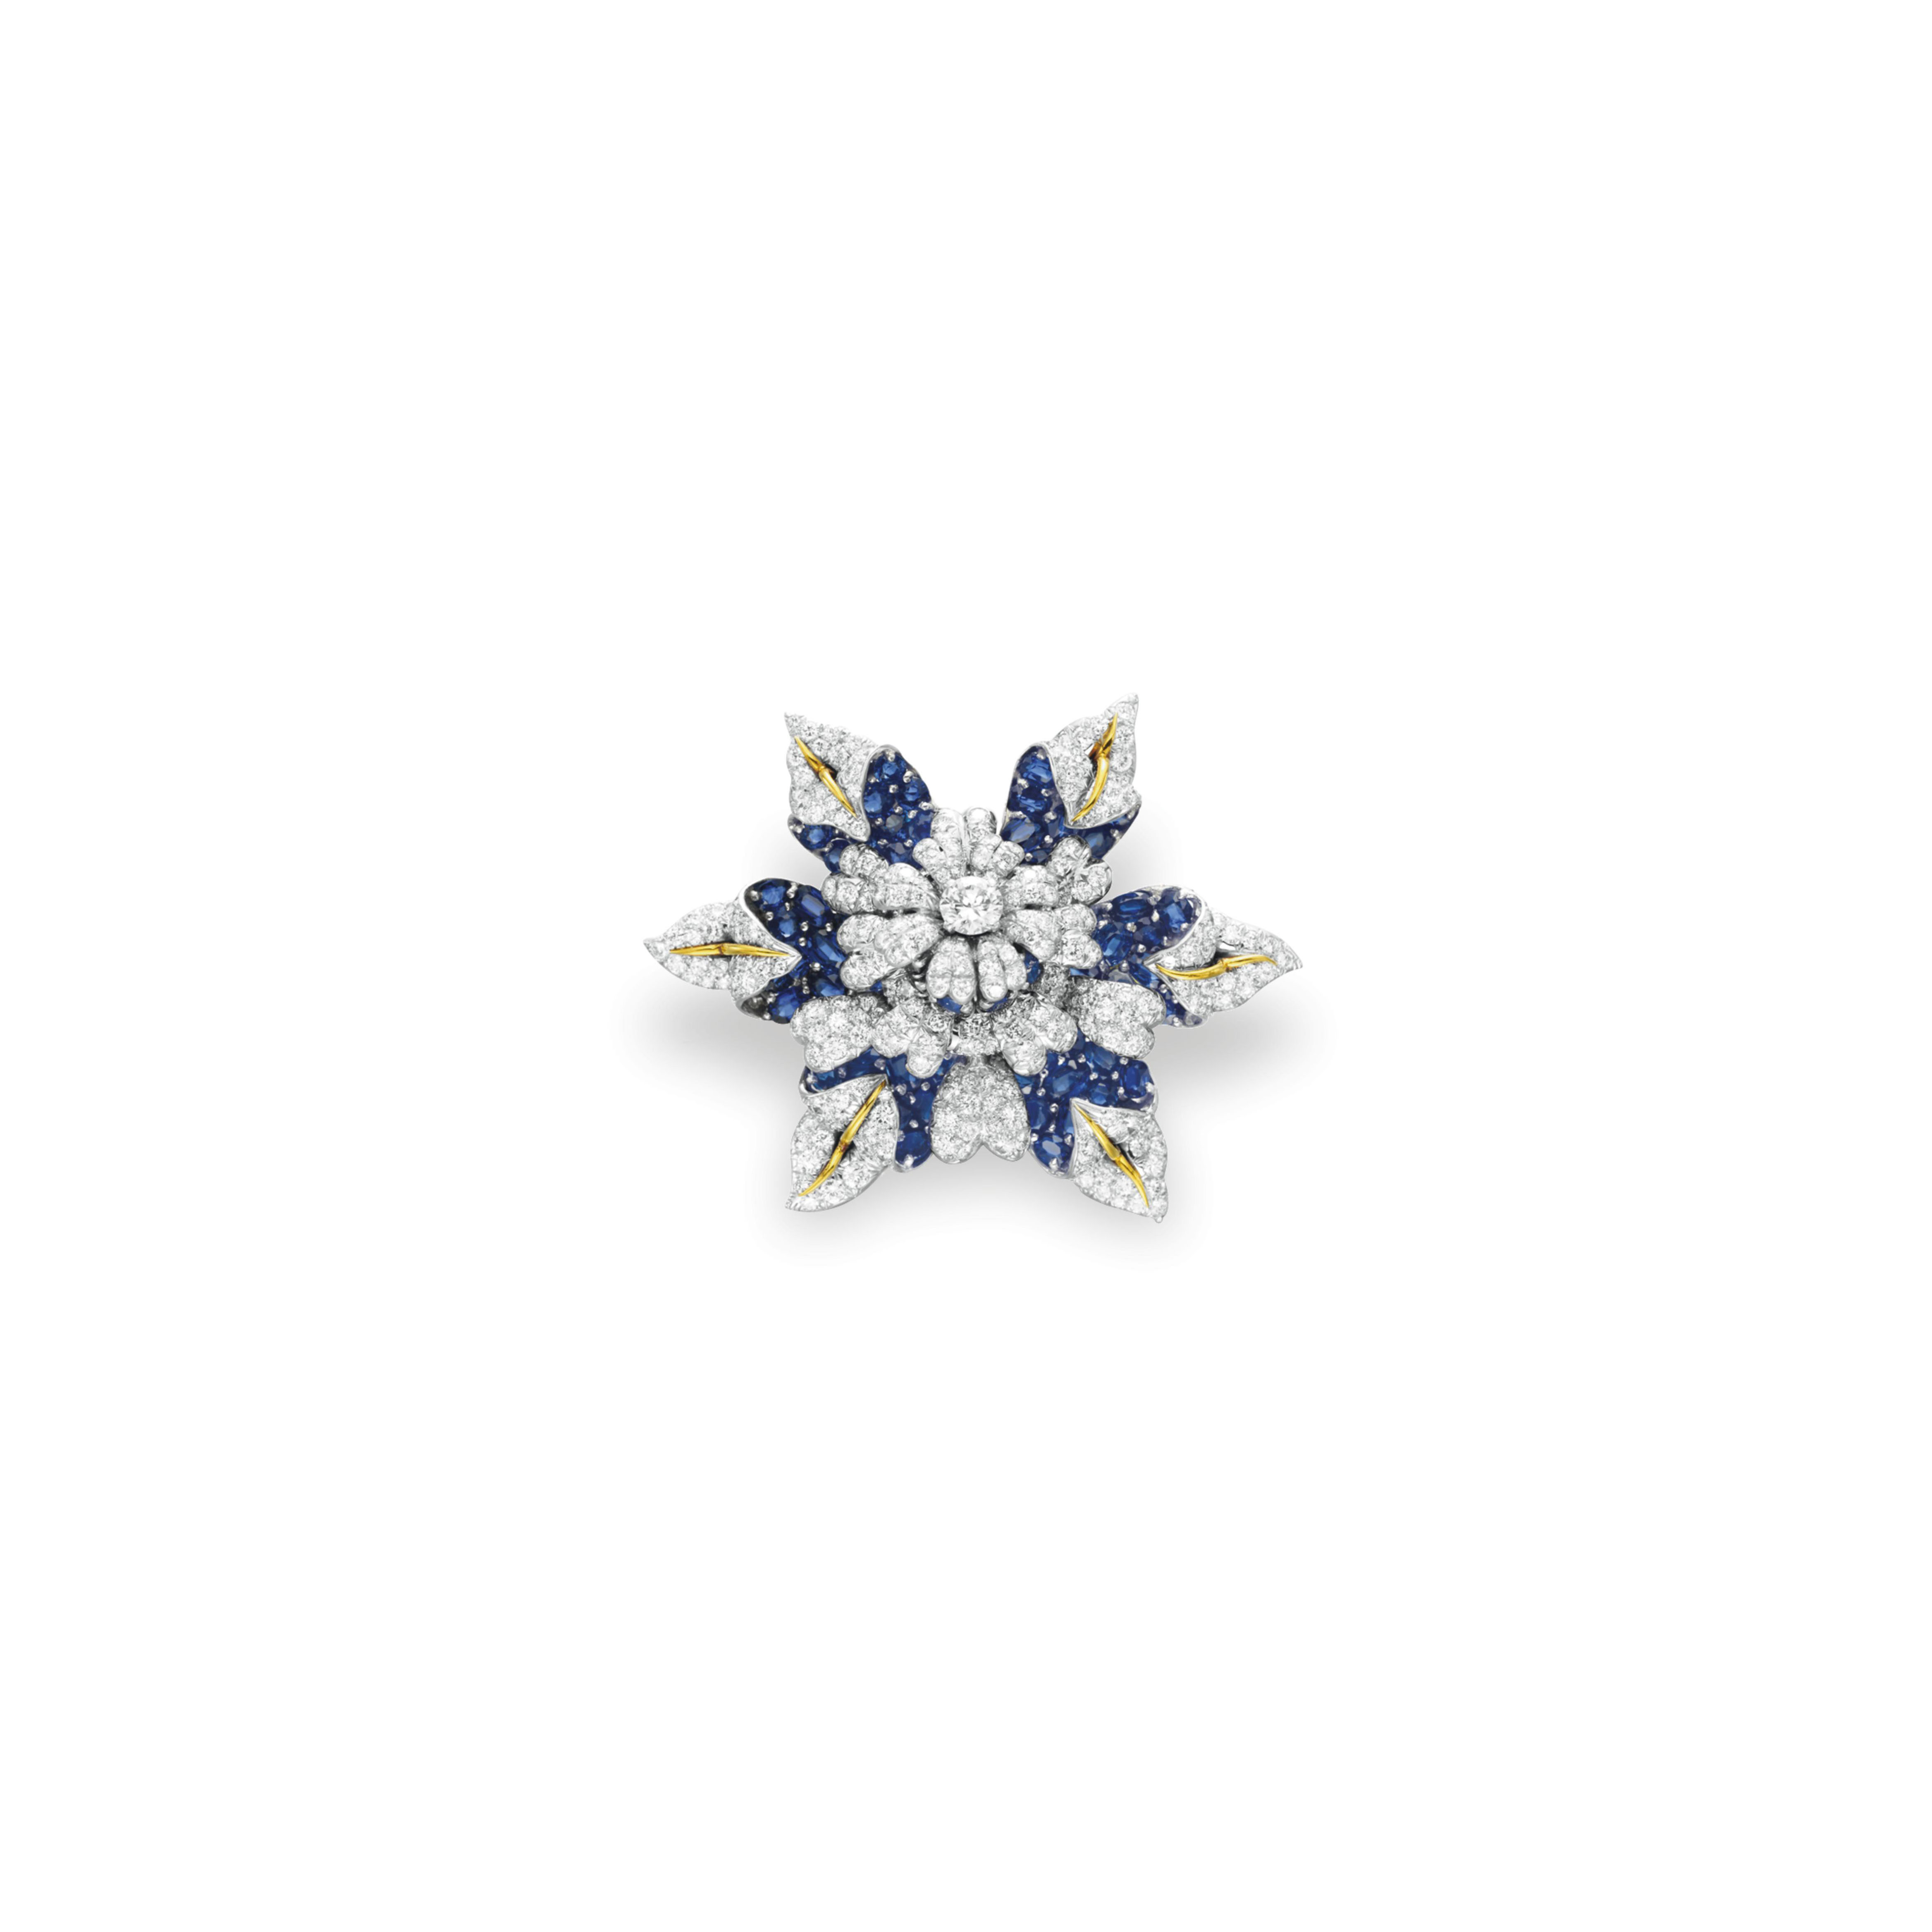 A DIAMOND AND SAPPHIRE BROOCH, BY JEAN SCHLUMBERGER, TIFFANY & CO.